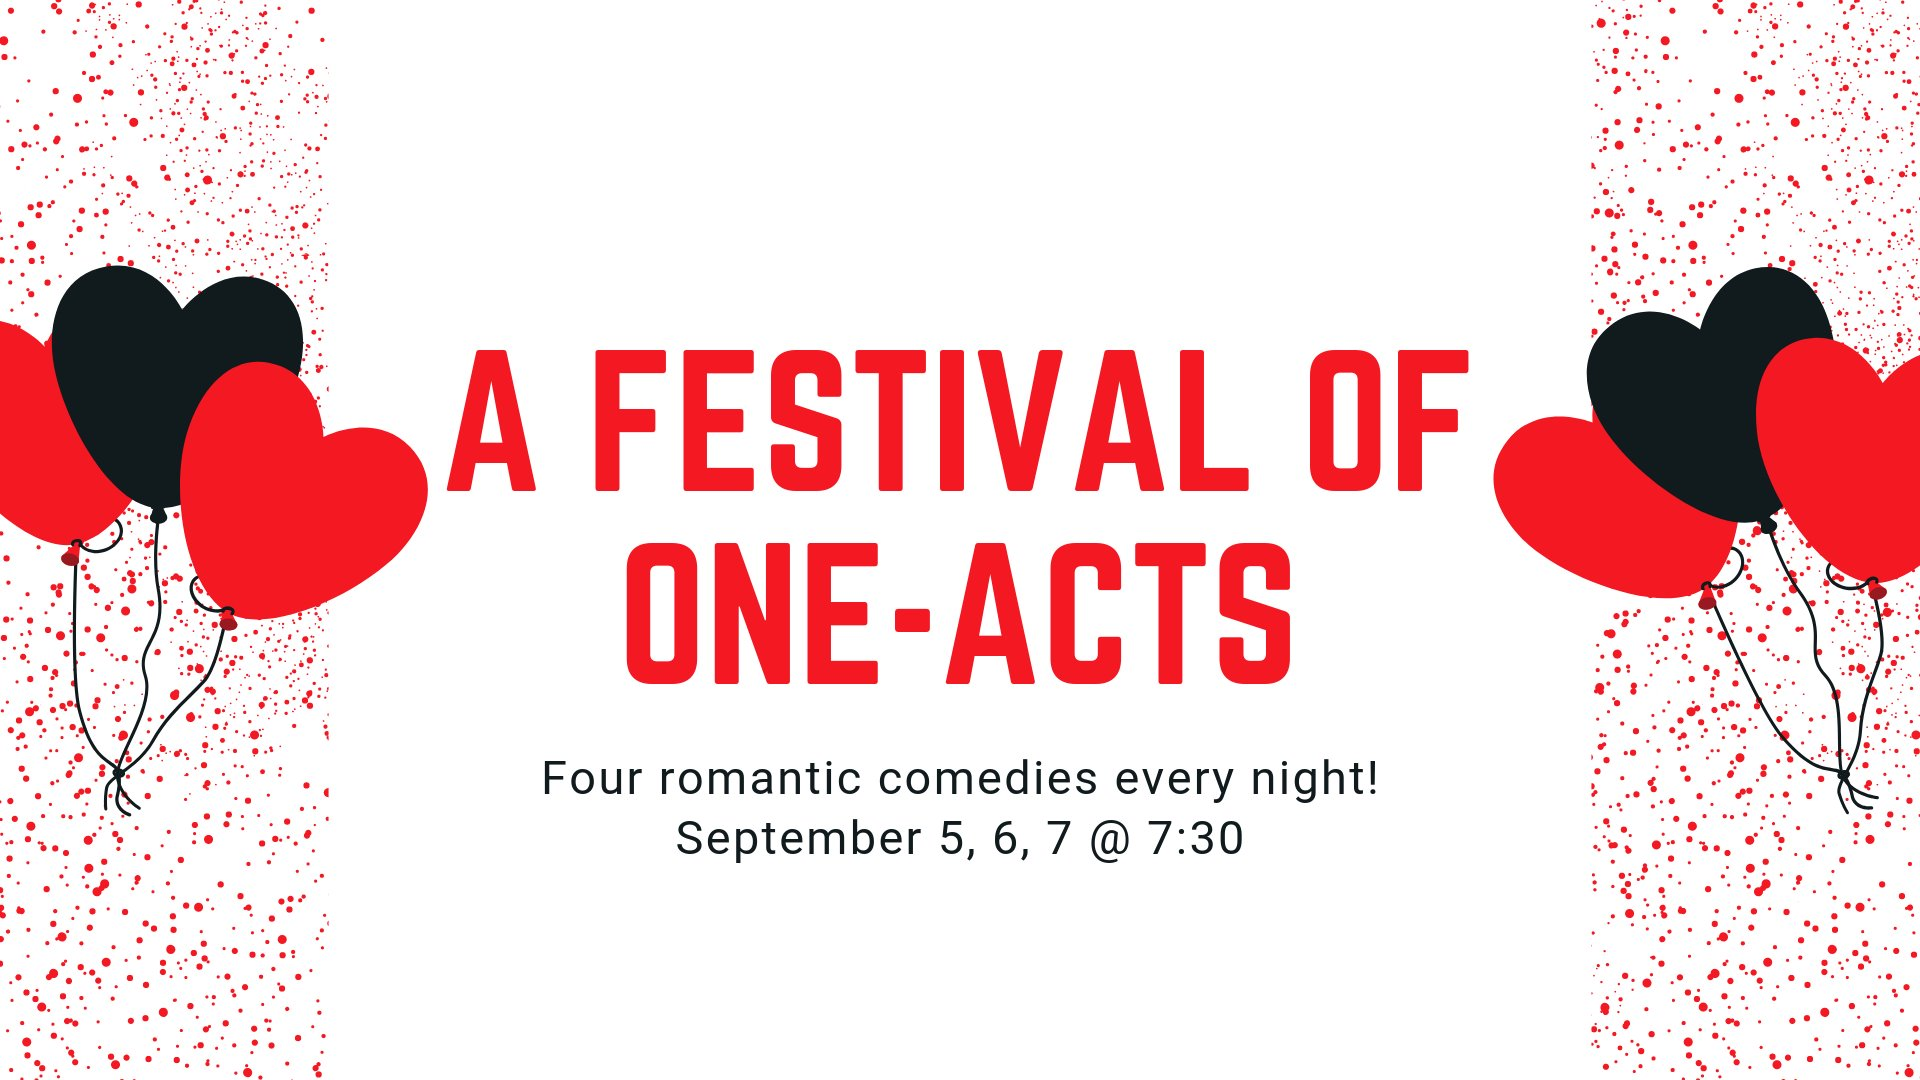 A Fall Festival of One Acts